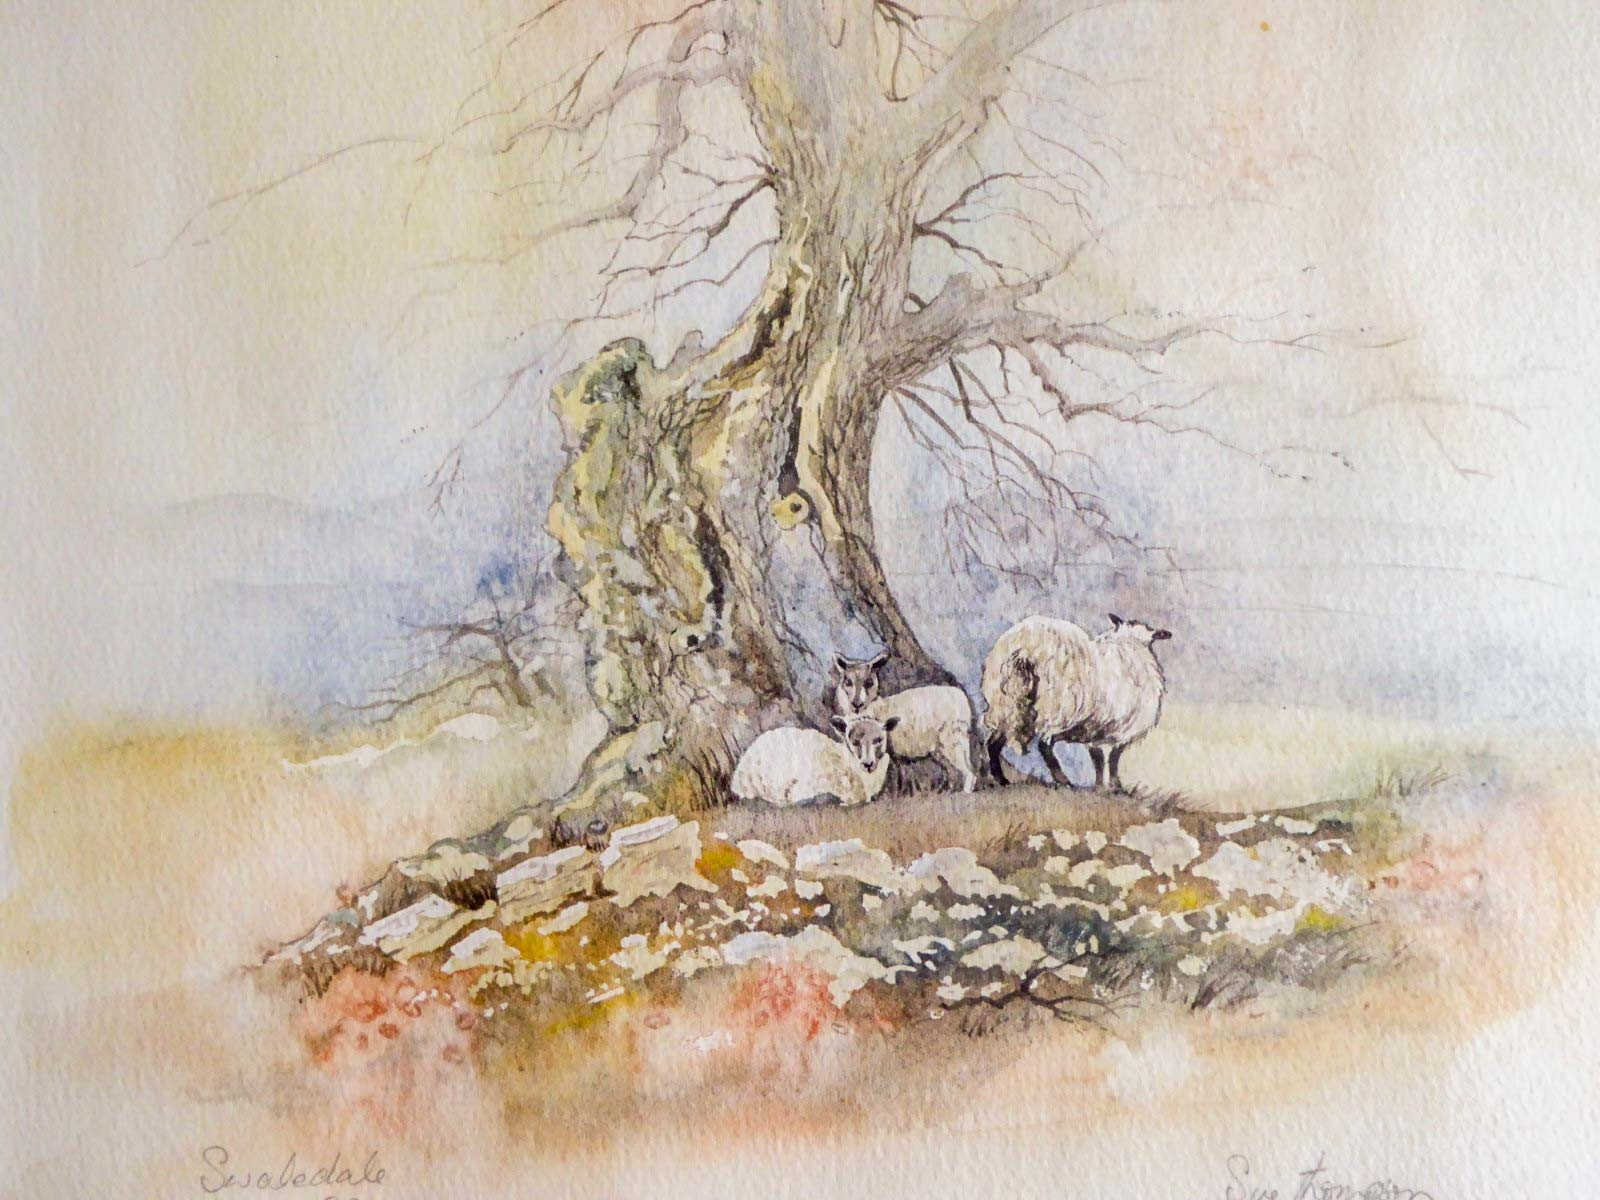 Sheep in Swaledale